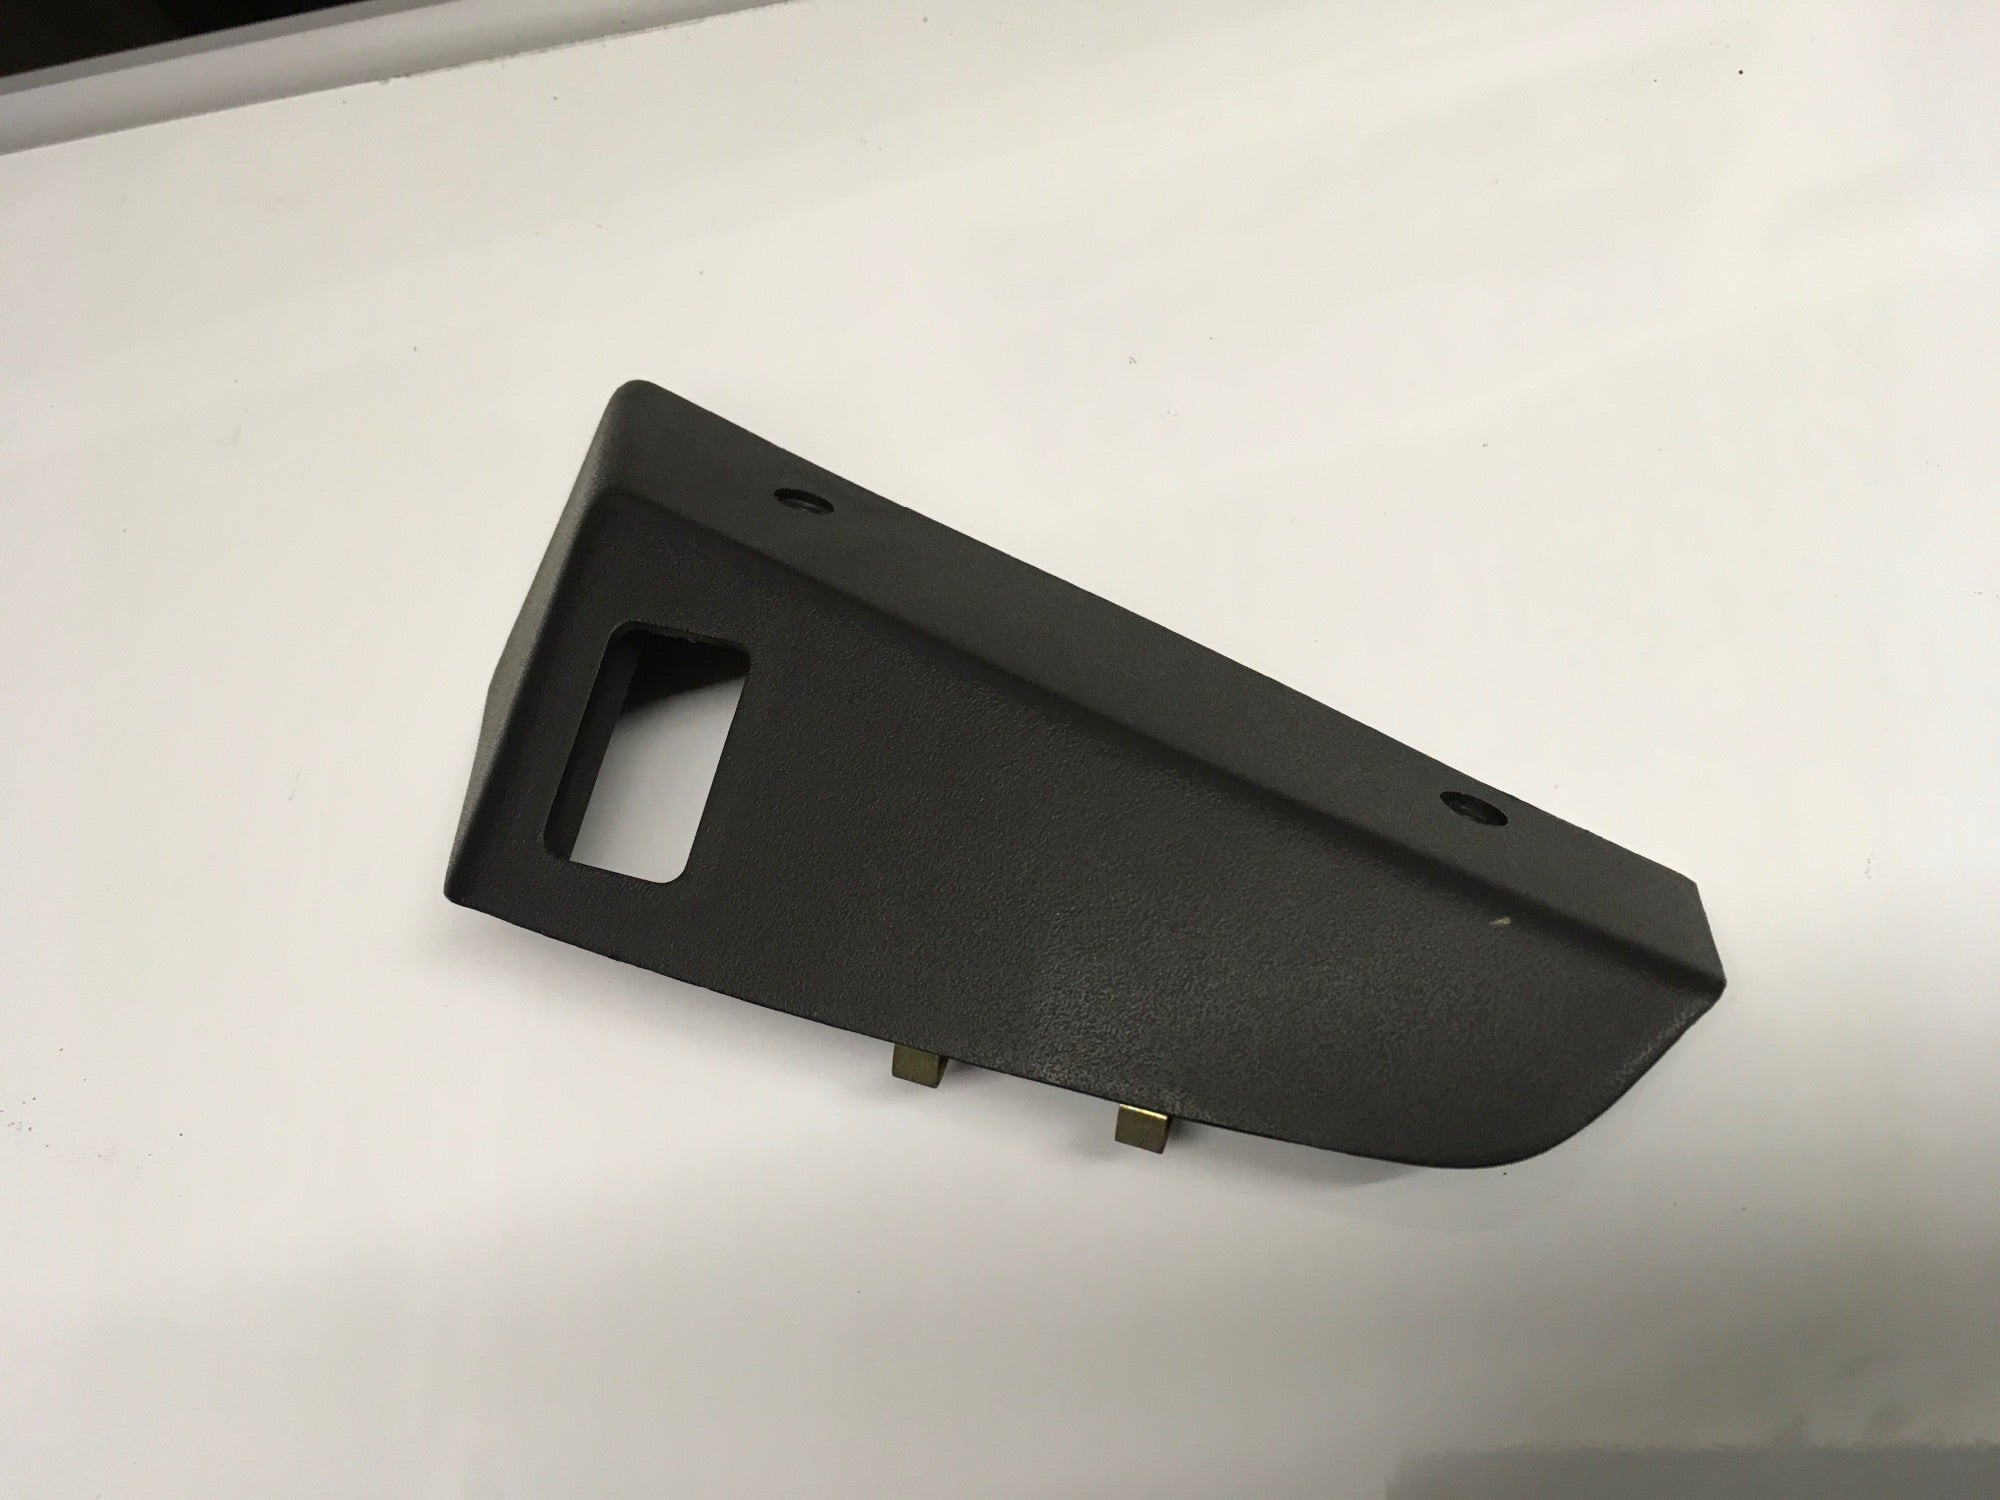 Porsche 944 passenger side electric window switch surround. 94555527101 ((Ref LB1a )) - Woolies Workshop - Porsche 924 944 spares